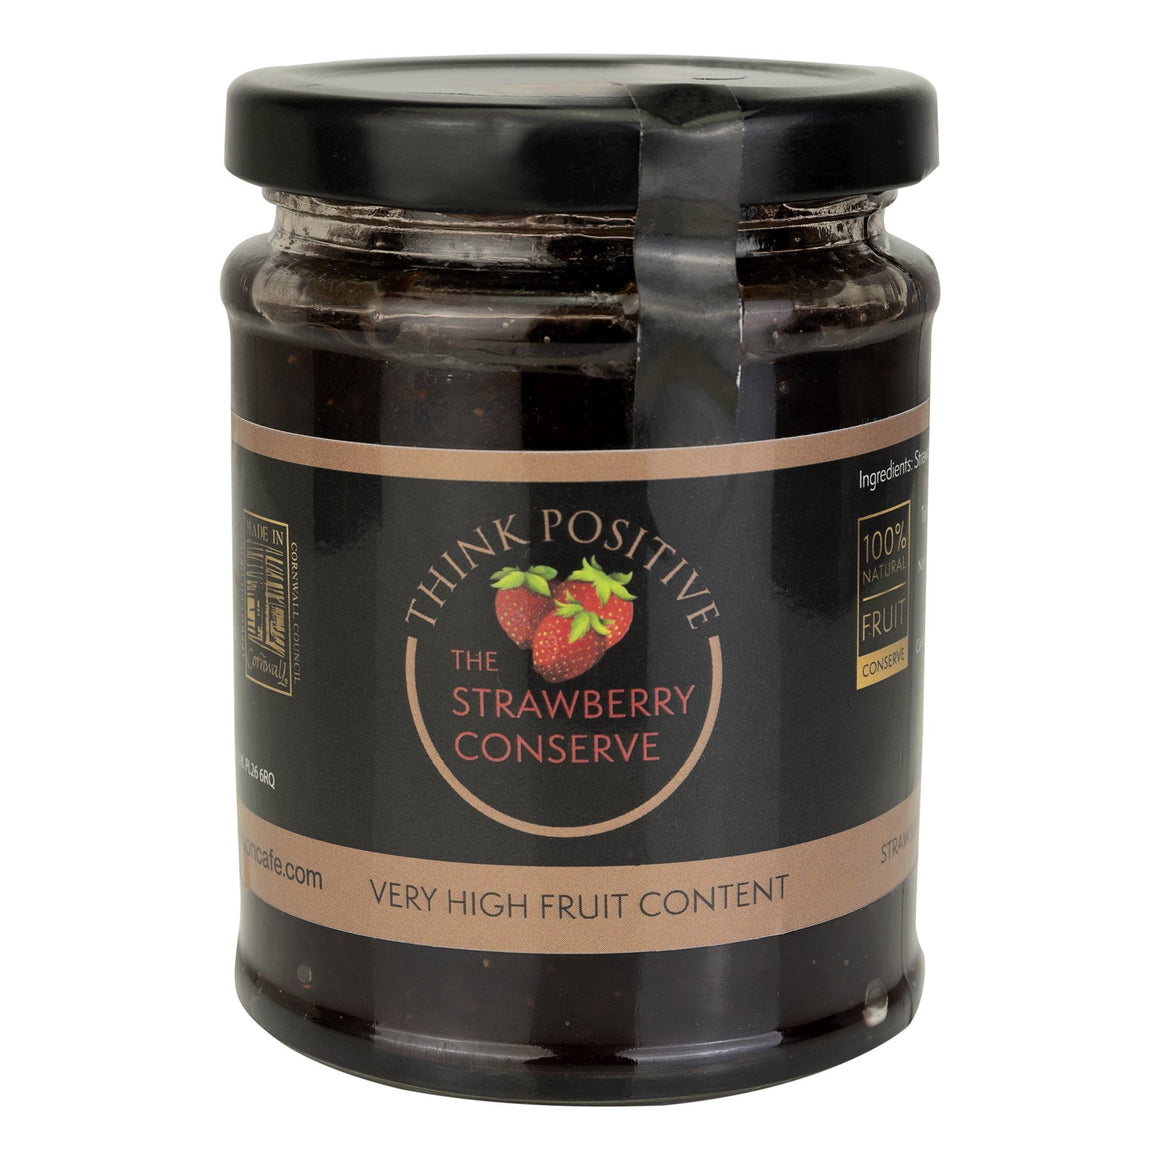 Think Positive Strawberry Conserve